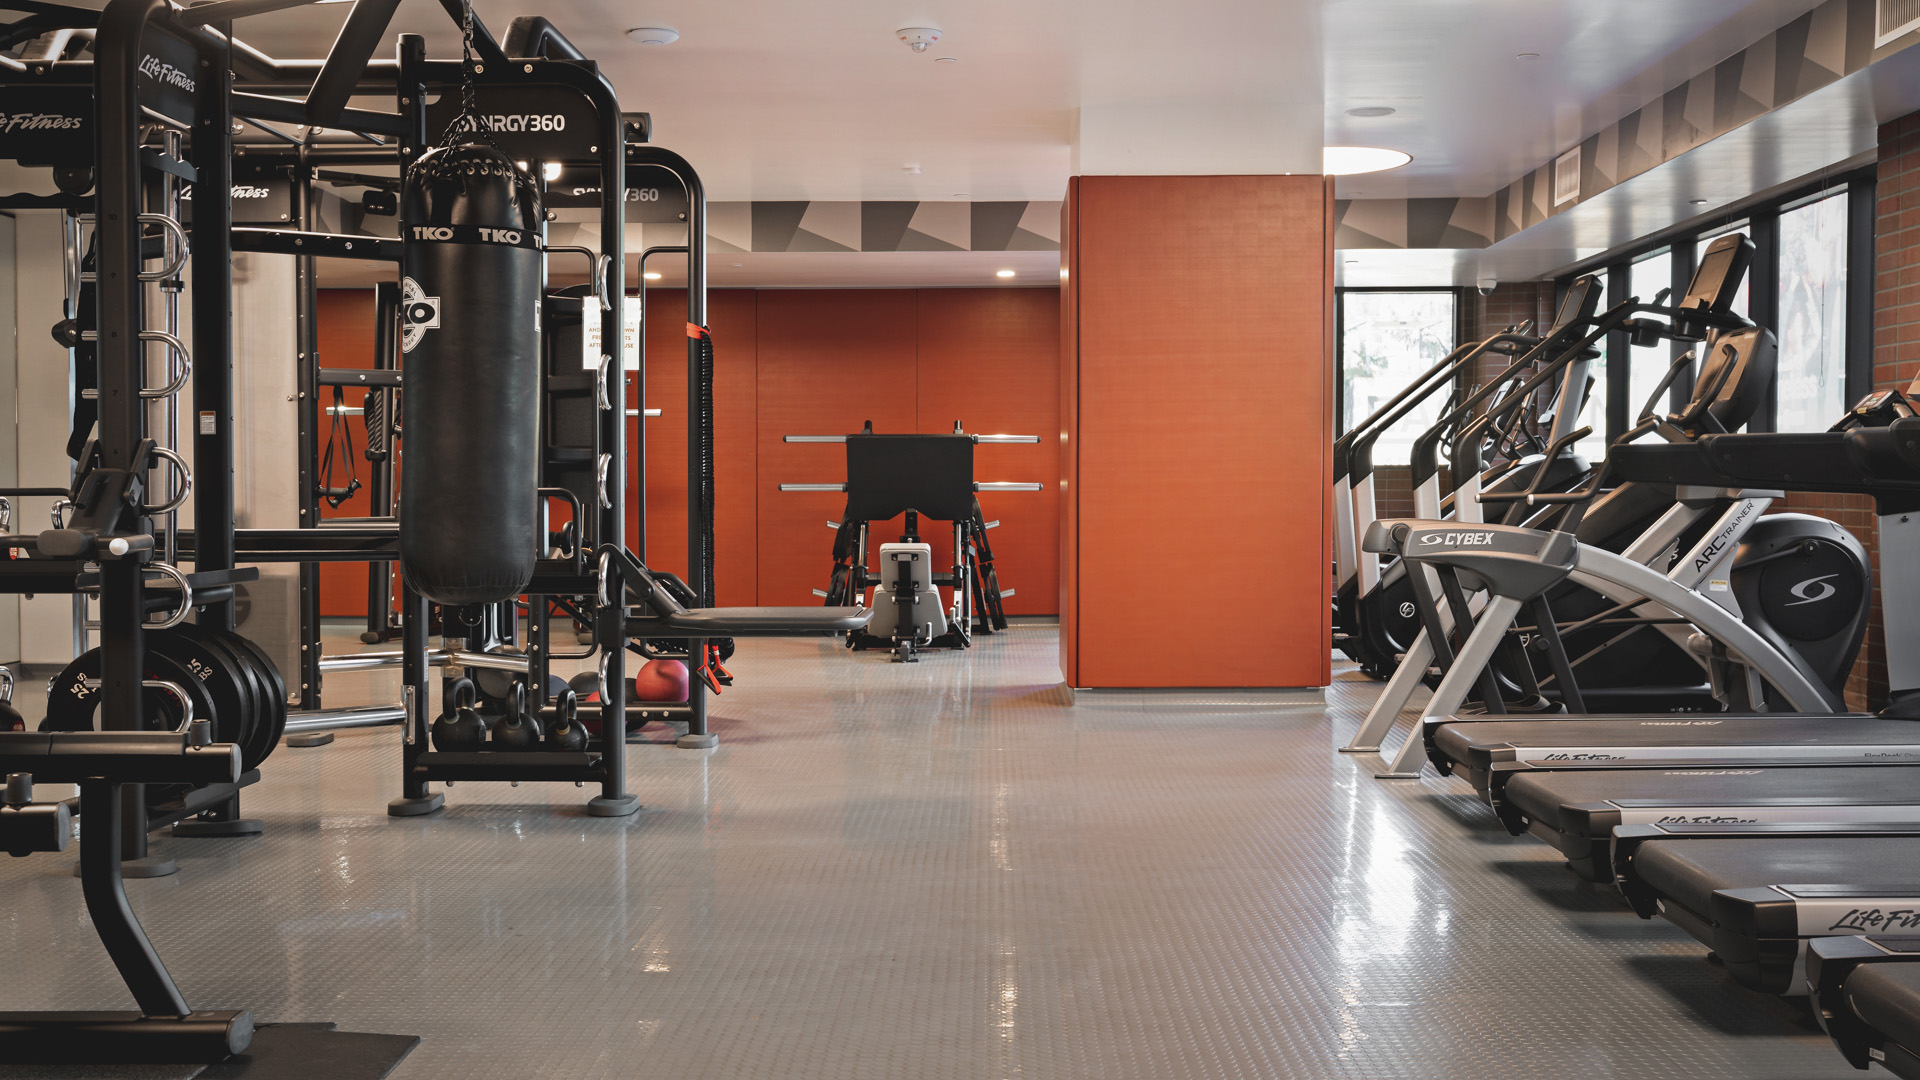 Fitness center with gym flooring, rows of cardio equipment, weight machines, and free weight racks.